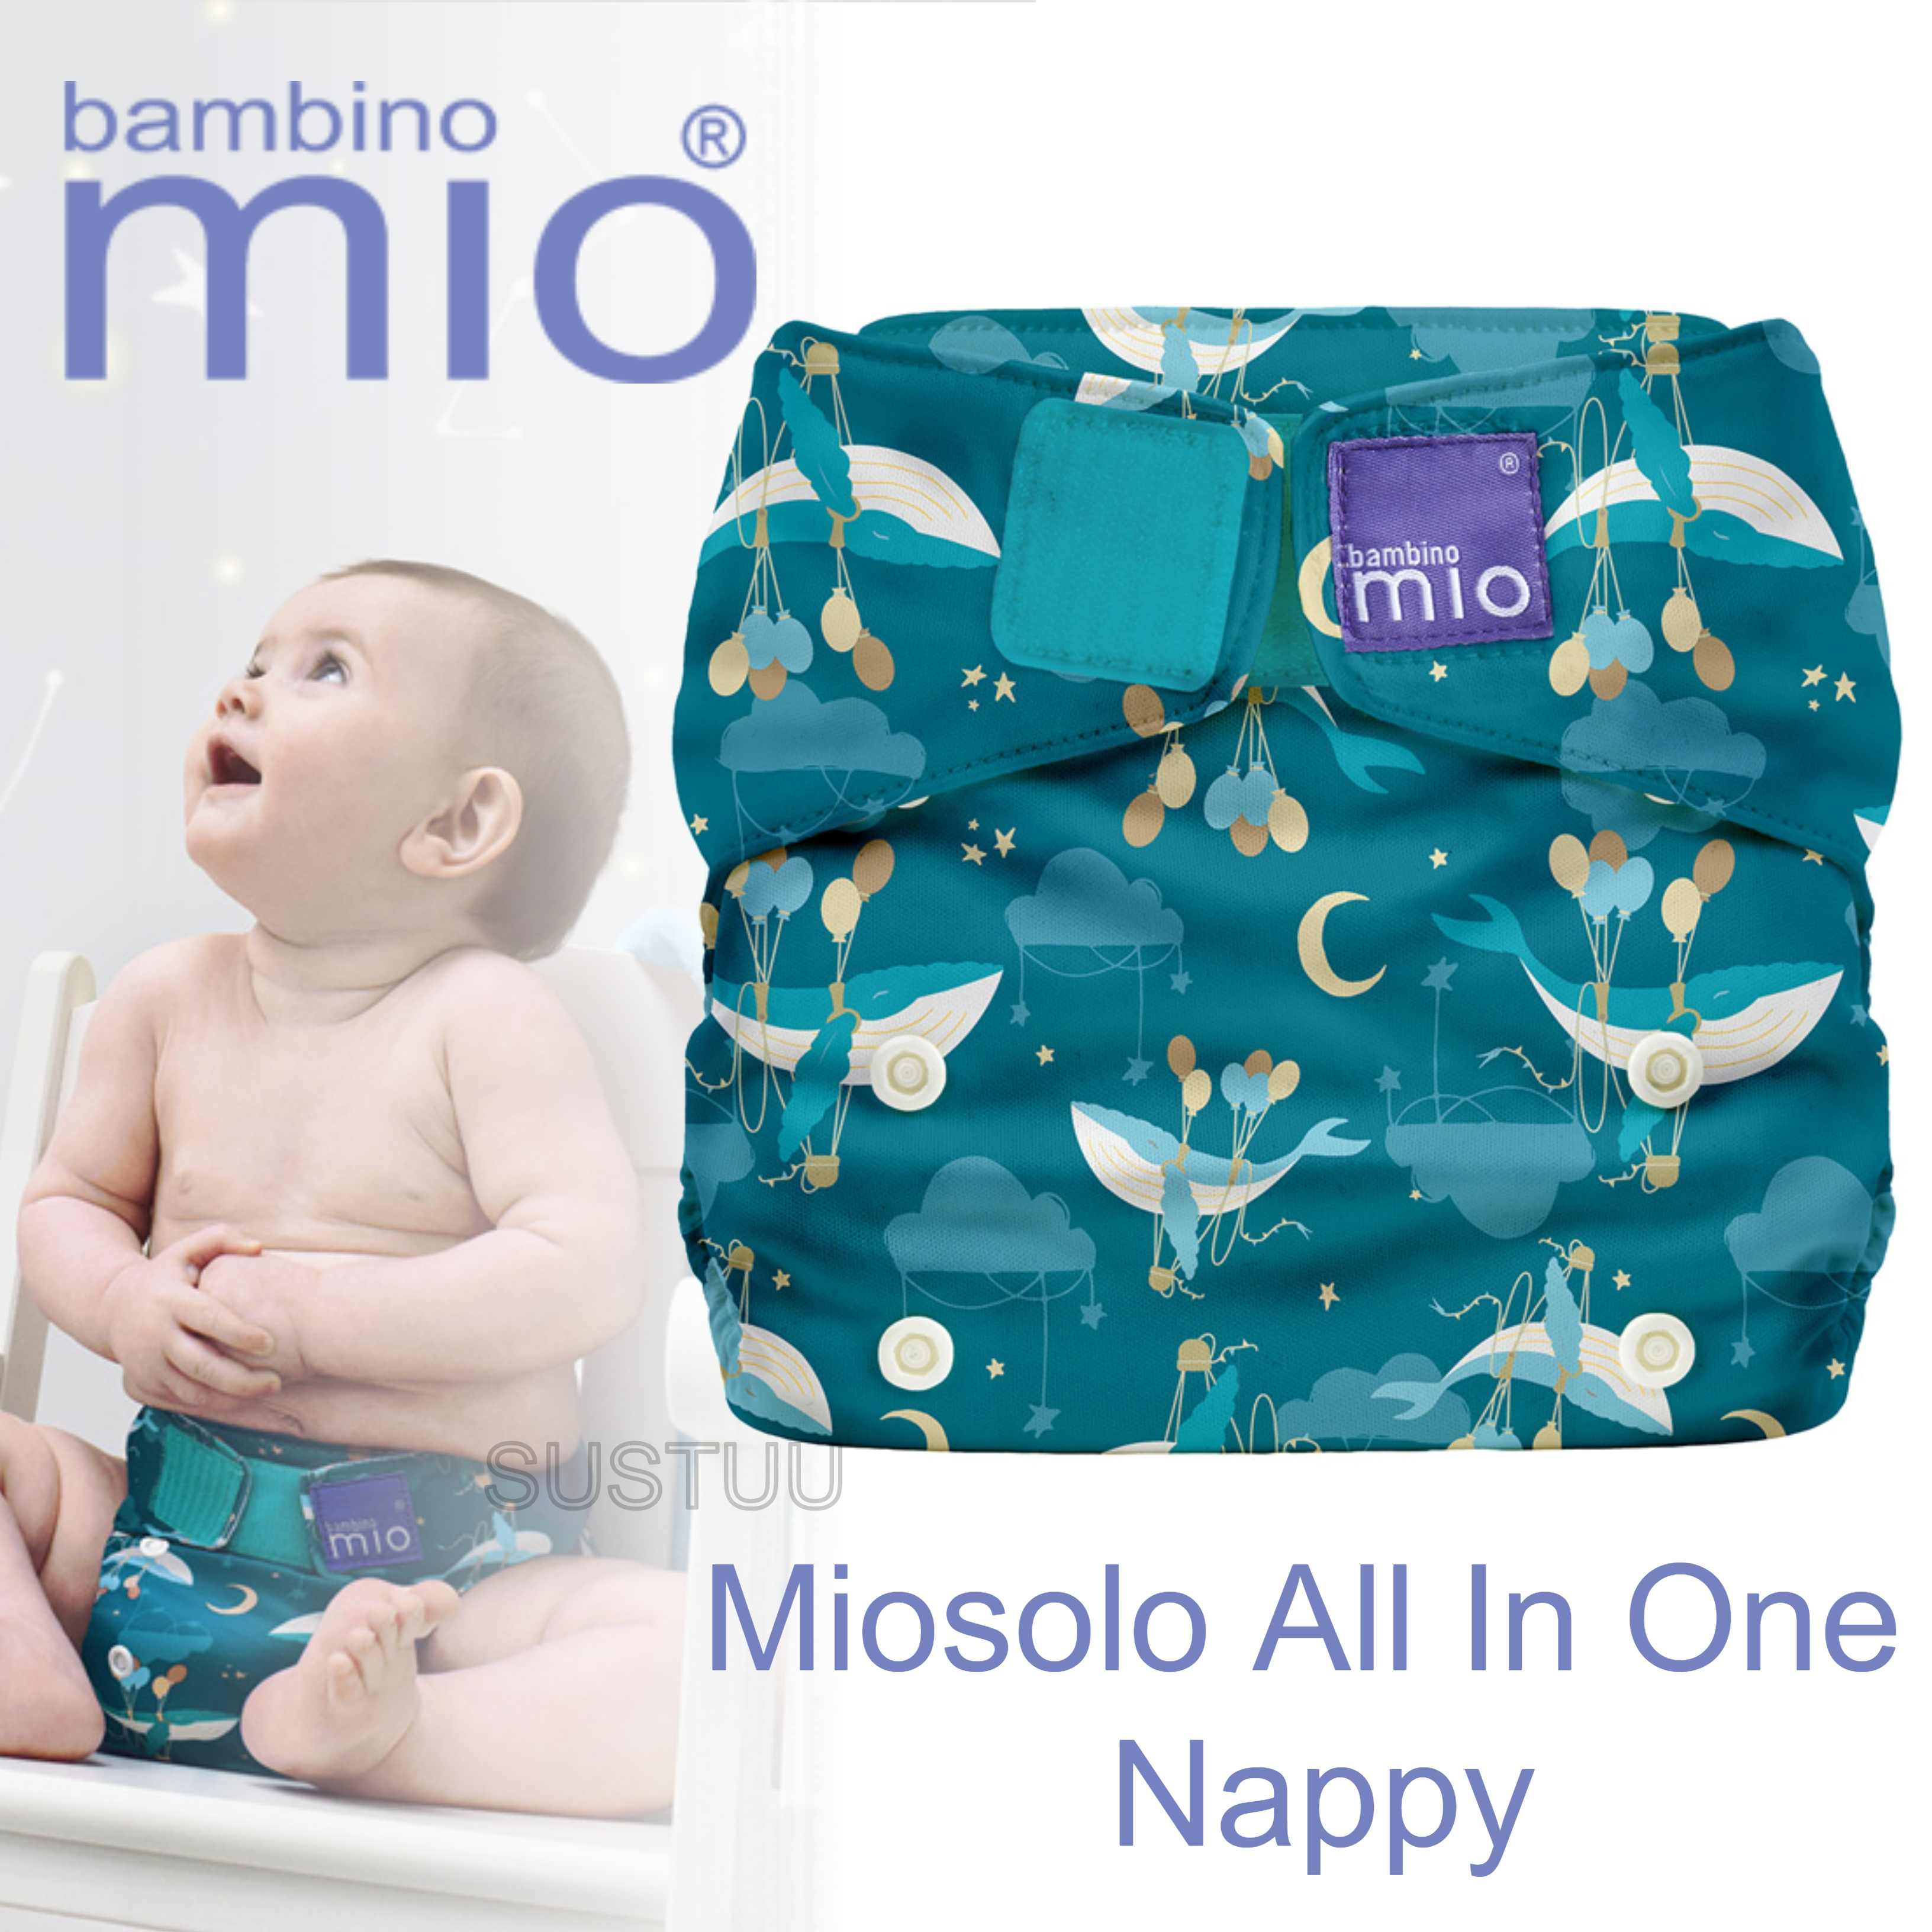 Bambino Mio Miosolo All In One Nappy|Polyester|For Baby No Moisturiser|Sail Away